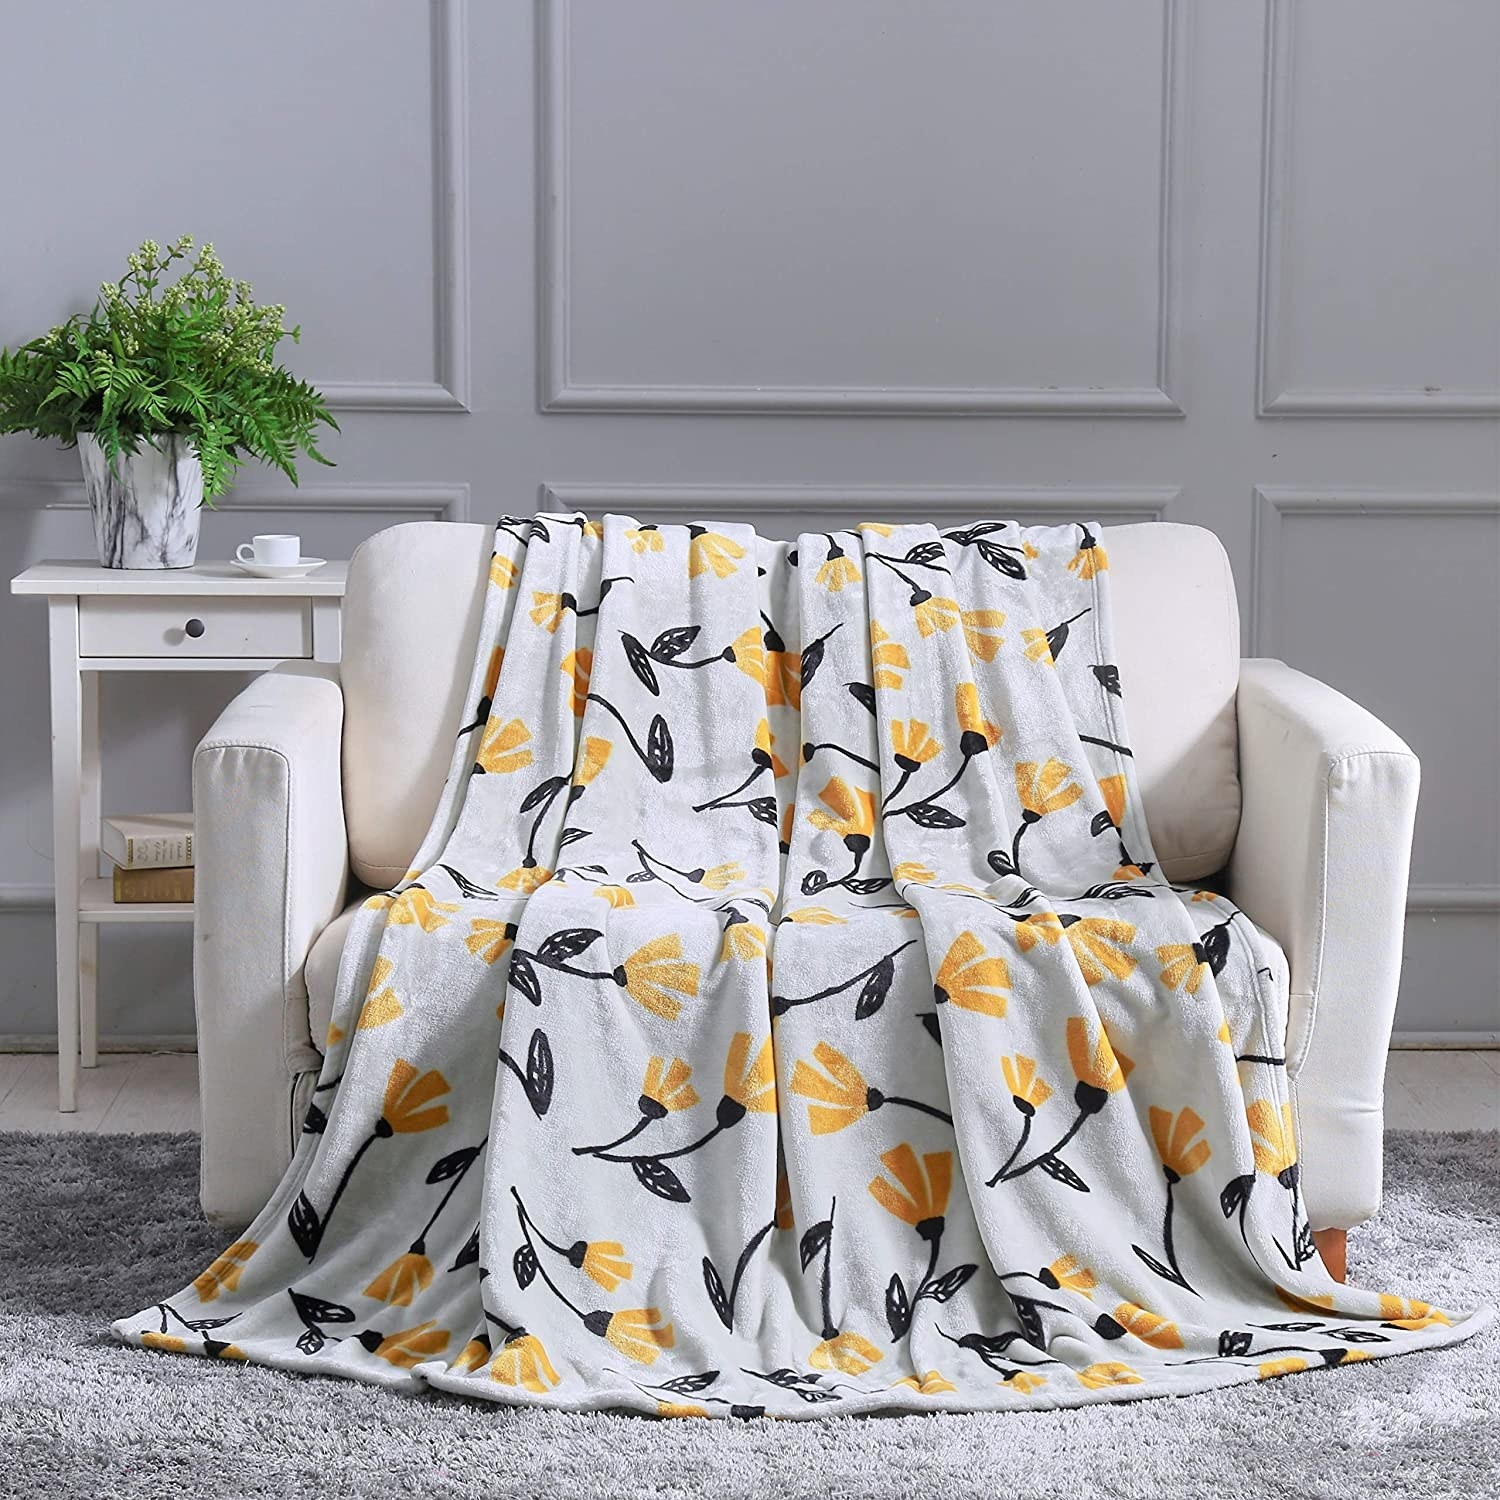 Floral throw placed over arm chair